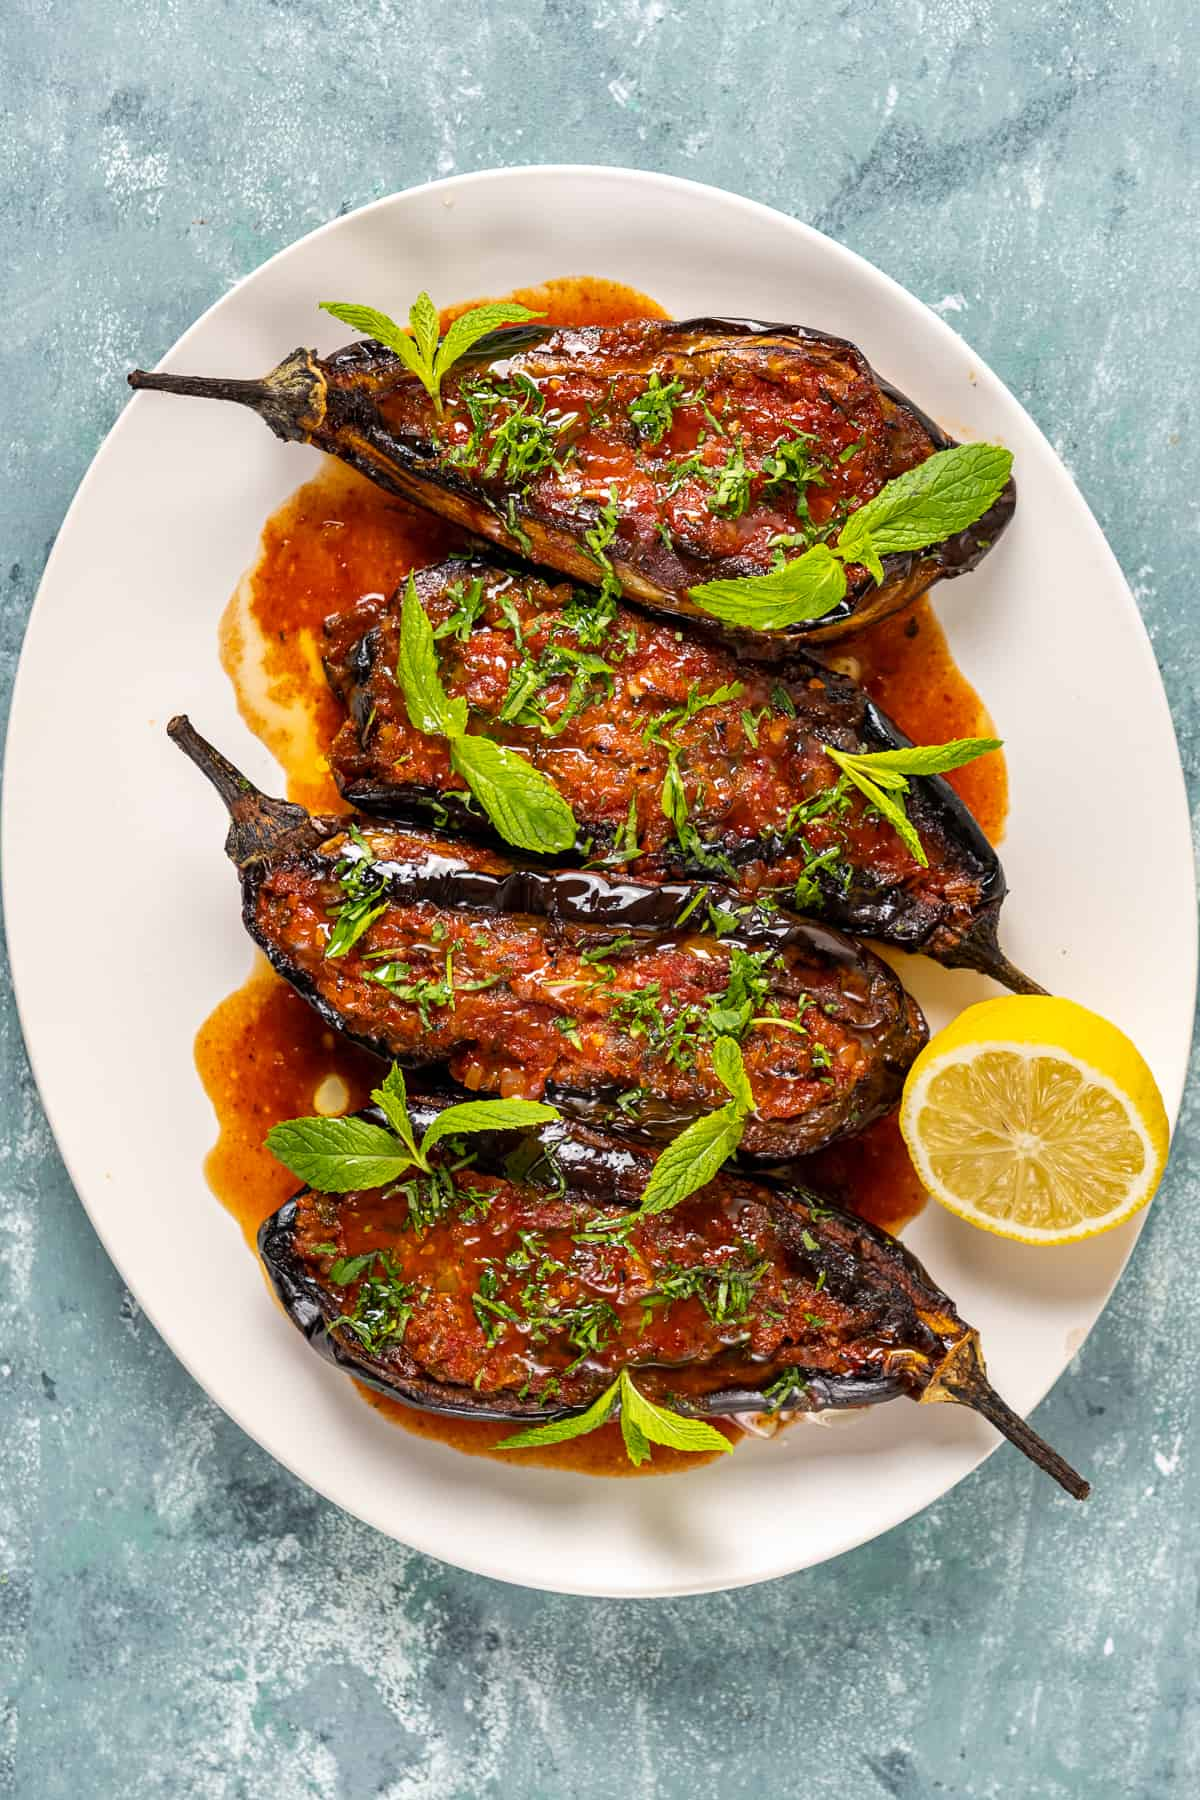 Imam bayildi eggplants served with tomato sauce, herbs and a half lemon in a white oval dish.